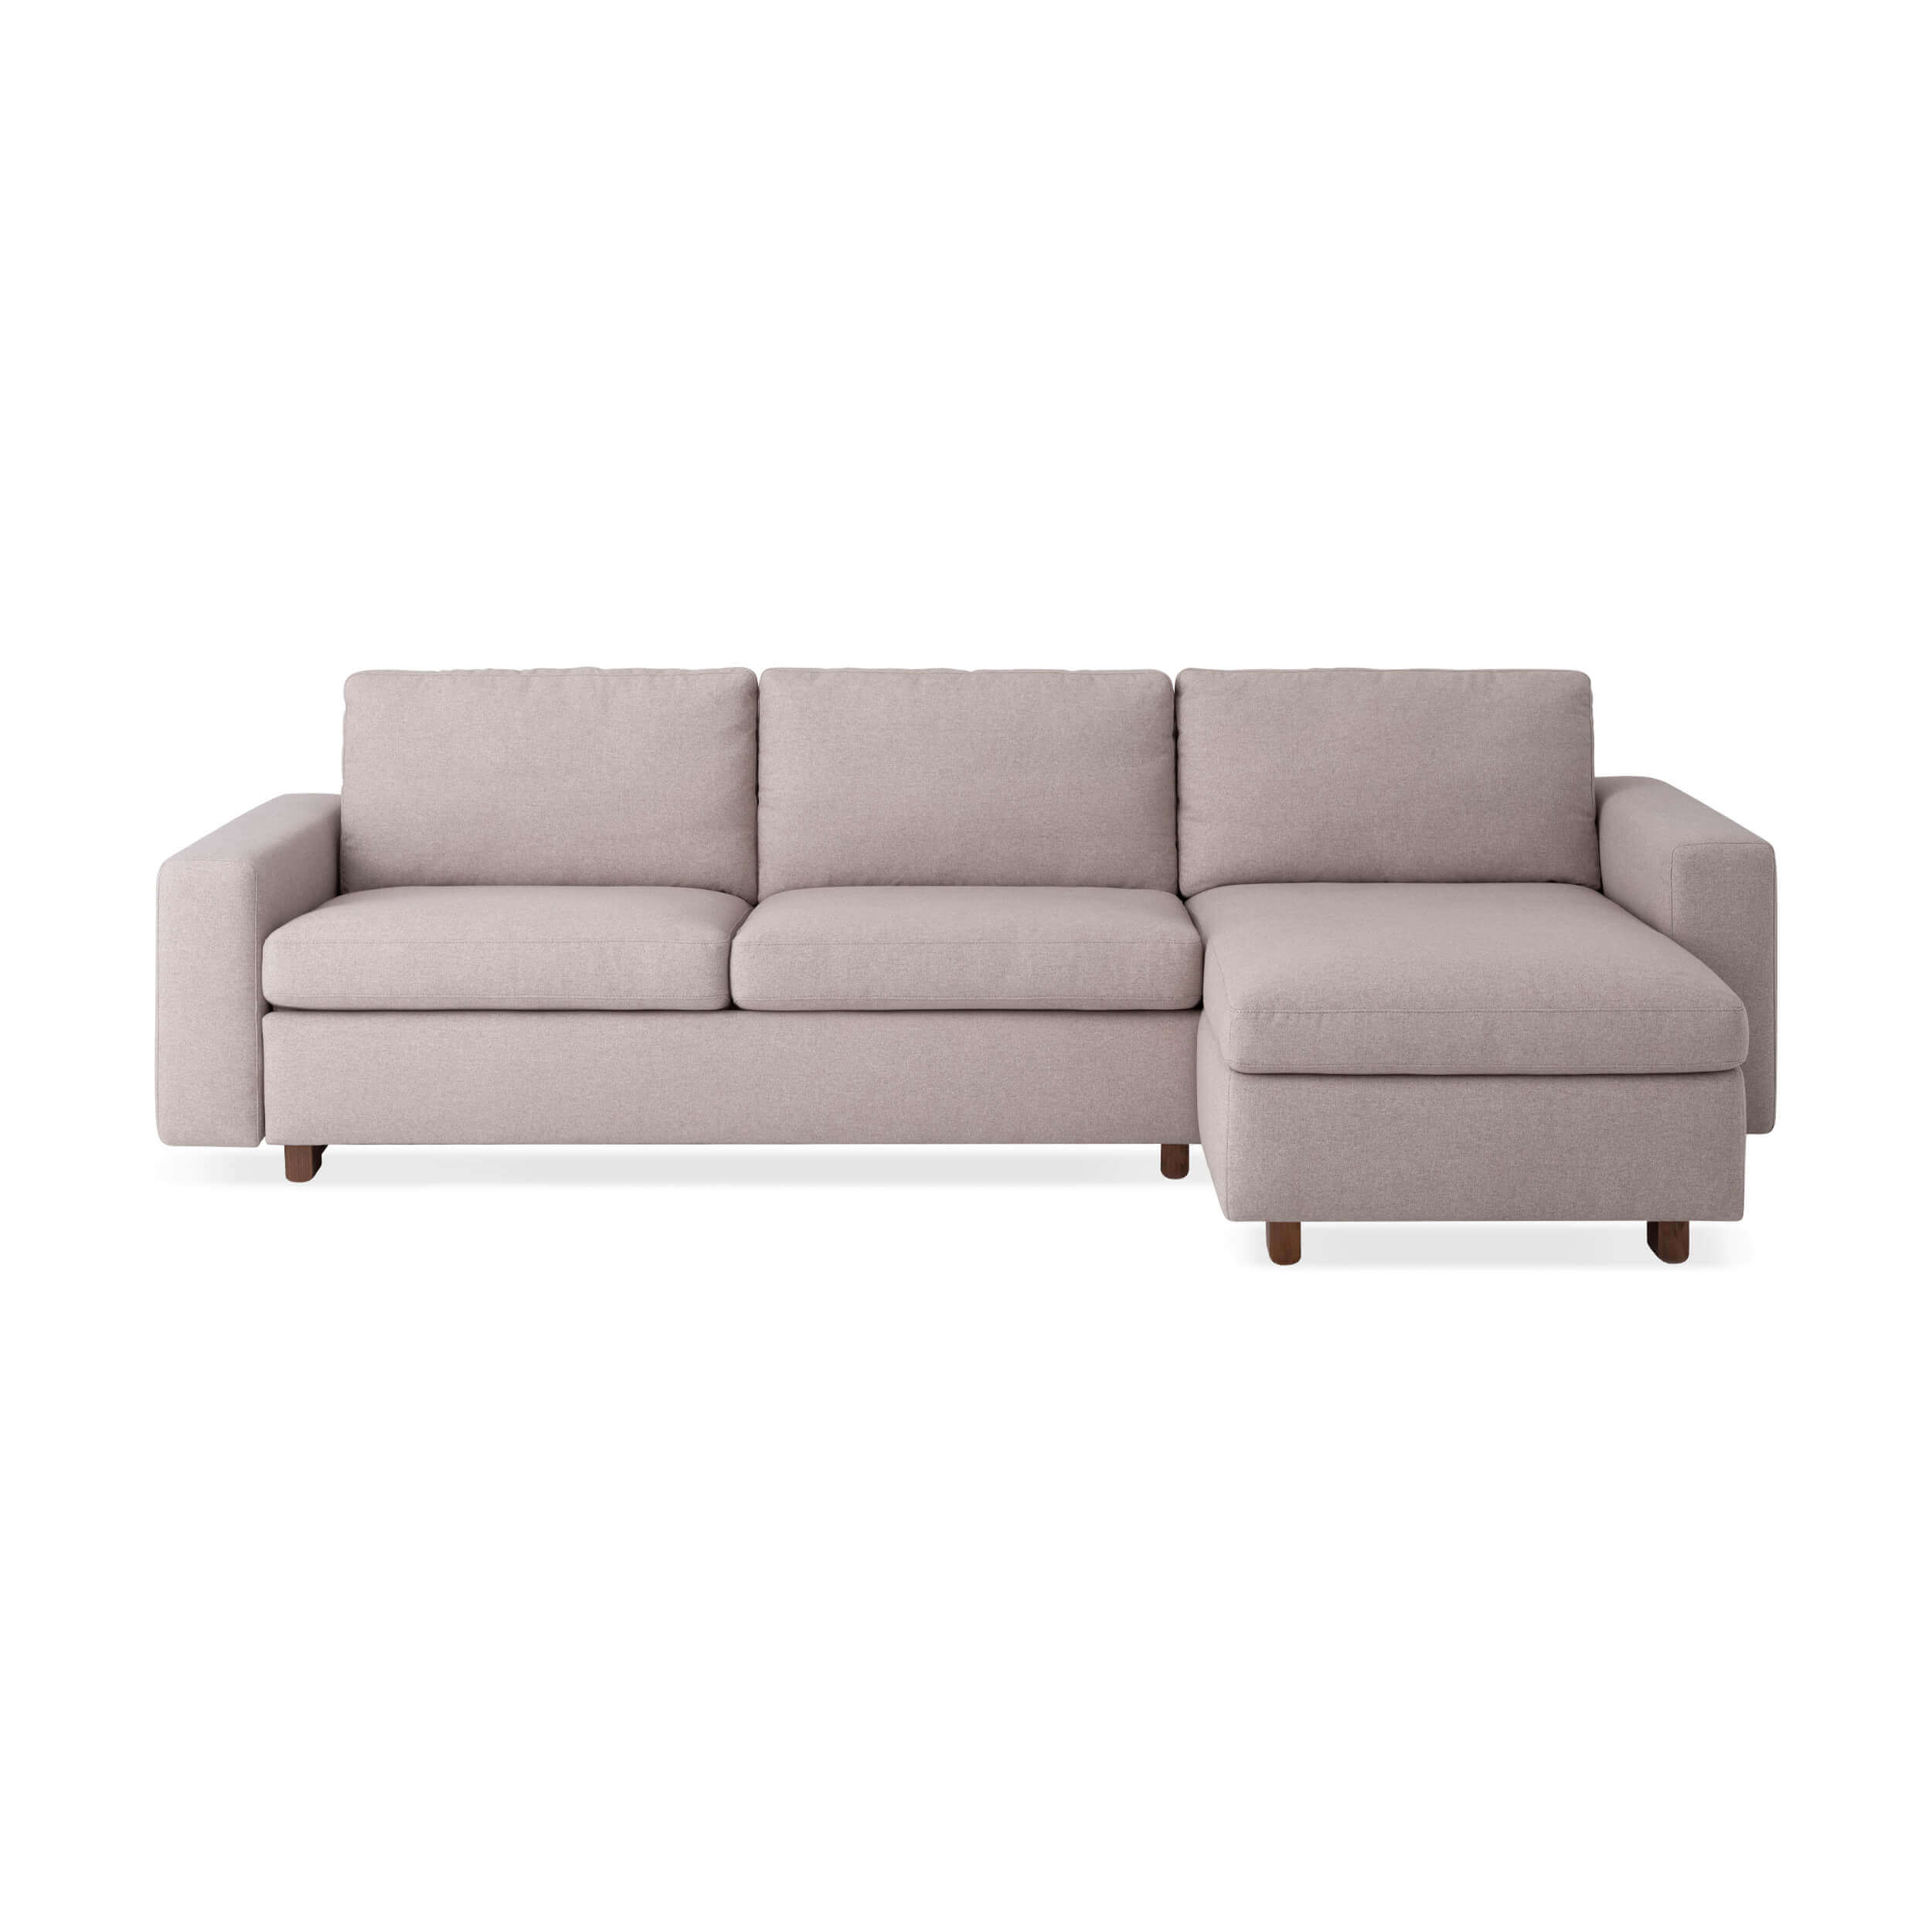 Enjoyable Reva 2 Piece Sectional Sleeper Sofa With Storage Chaise Fabric Pdpeps Interior Chair Design Pdpepsorg